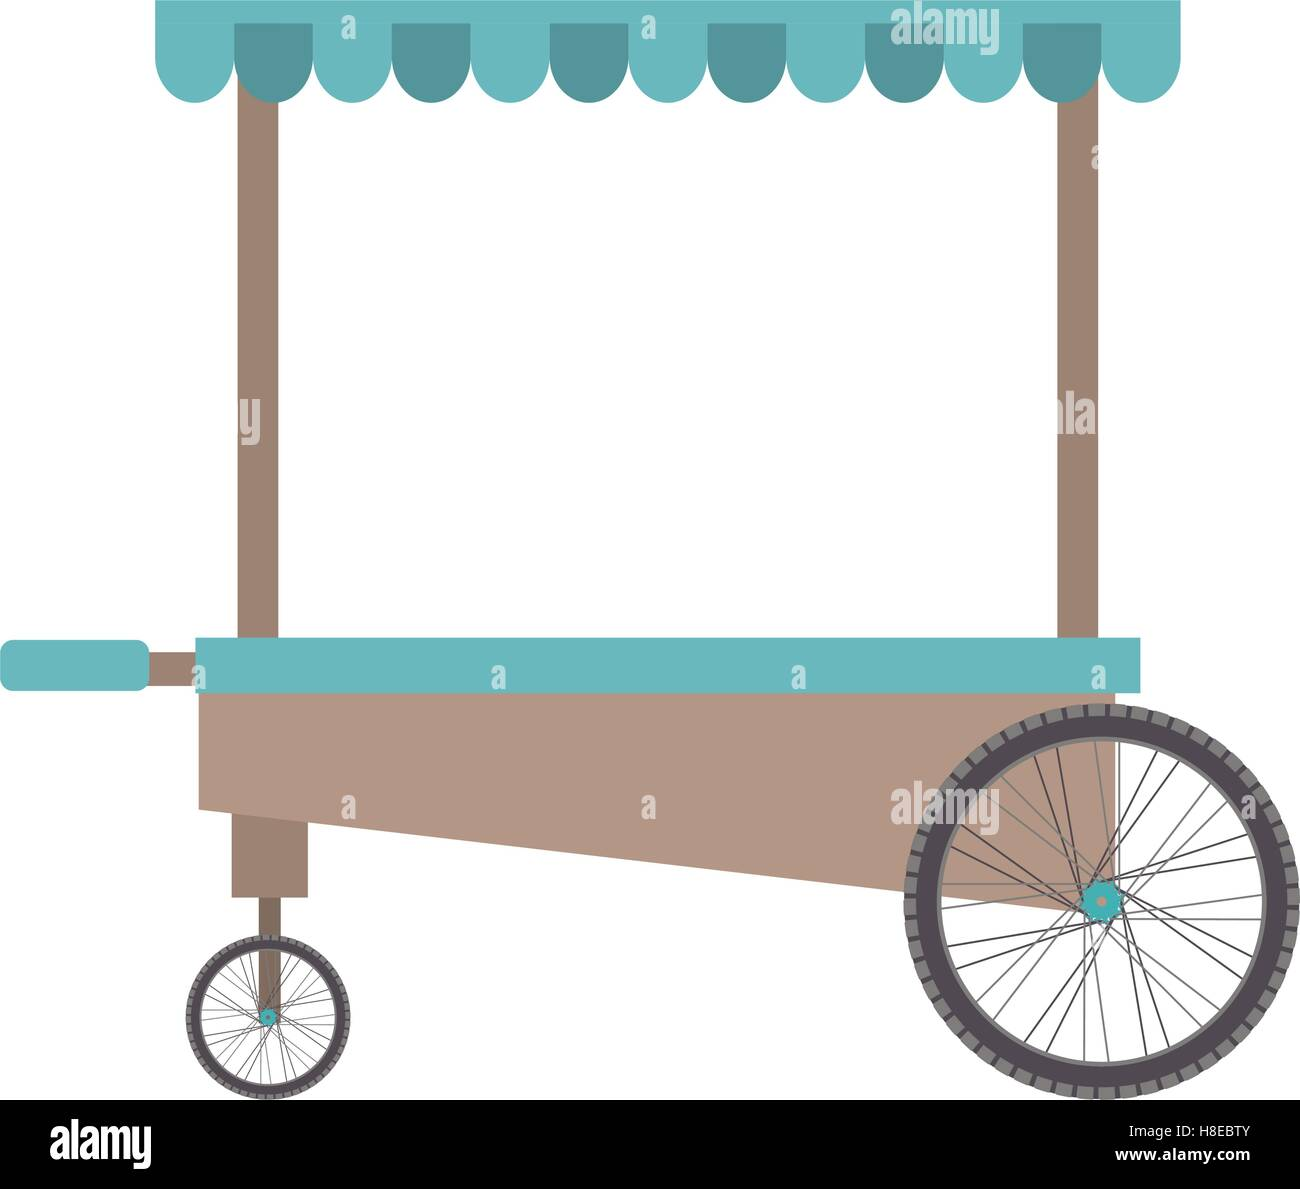 Fast Food Stand Stock Vector Images - Page 2 - Alamy